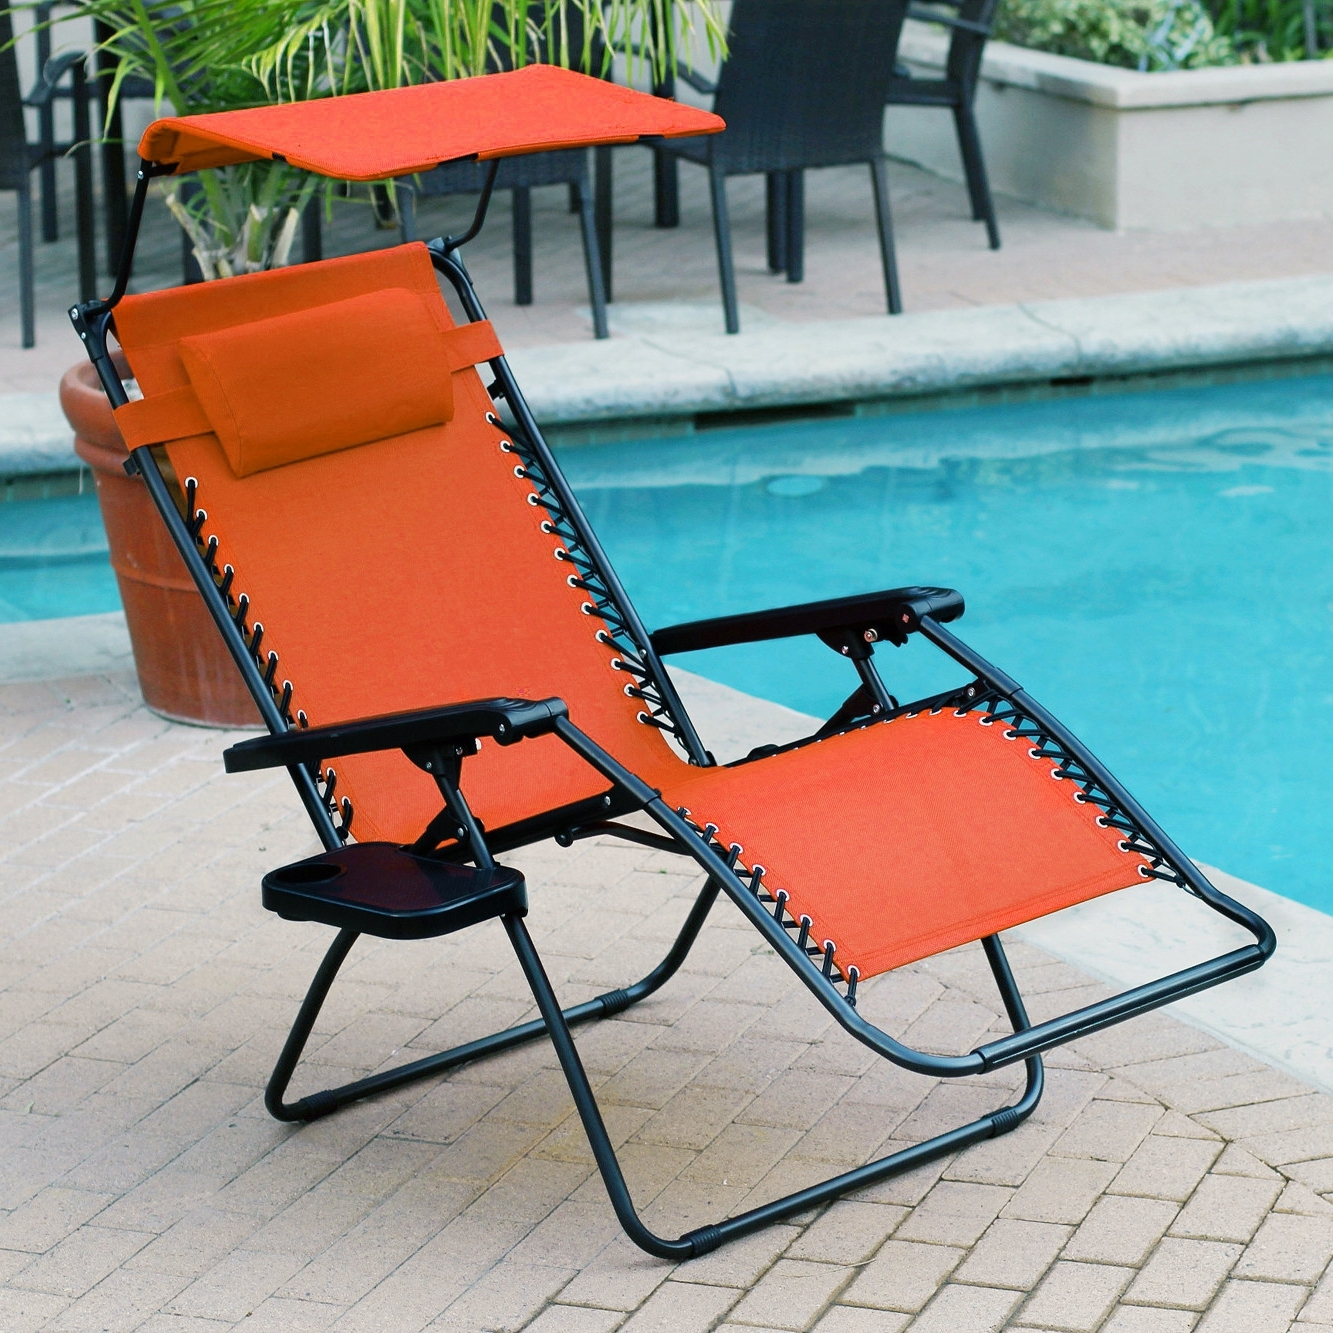 Most Up To Date Zero Gravity Chaise Lounge Chairs In 4 Best Zero Gravity Chairs On The Market (2018 Reviews & Guide) (View 9 of 15)